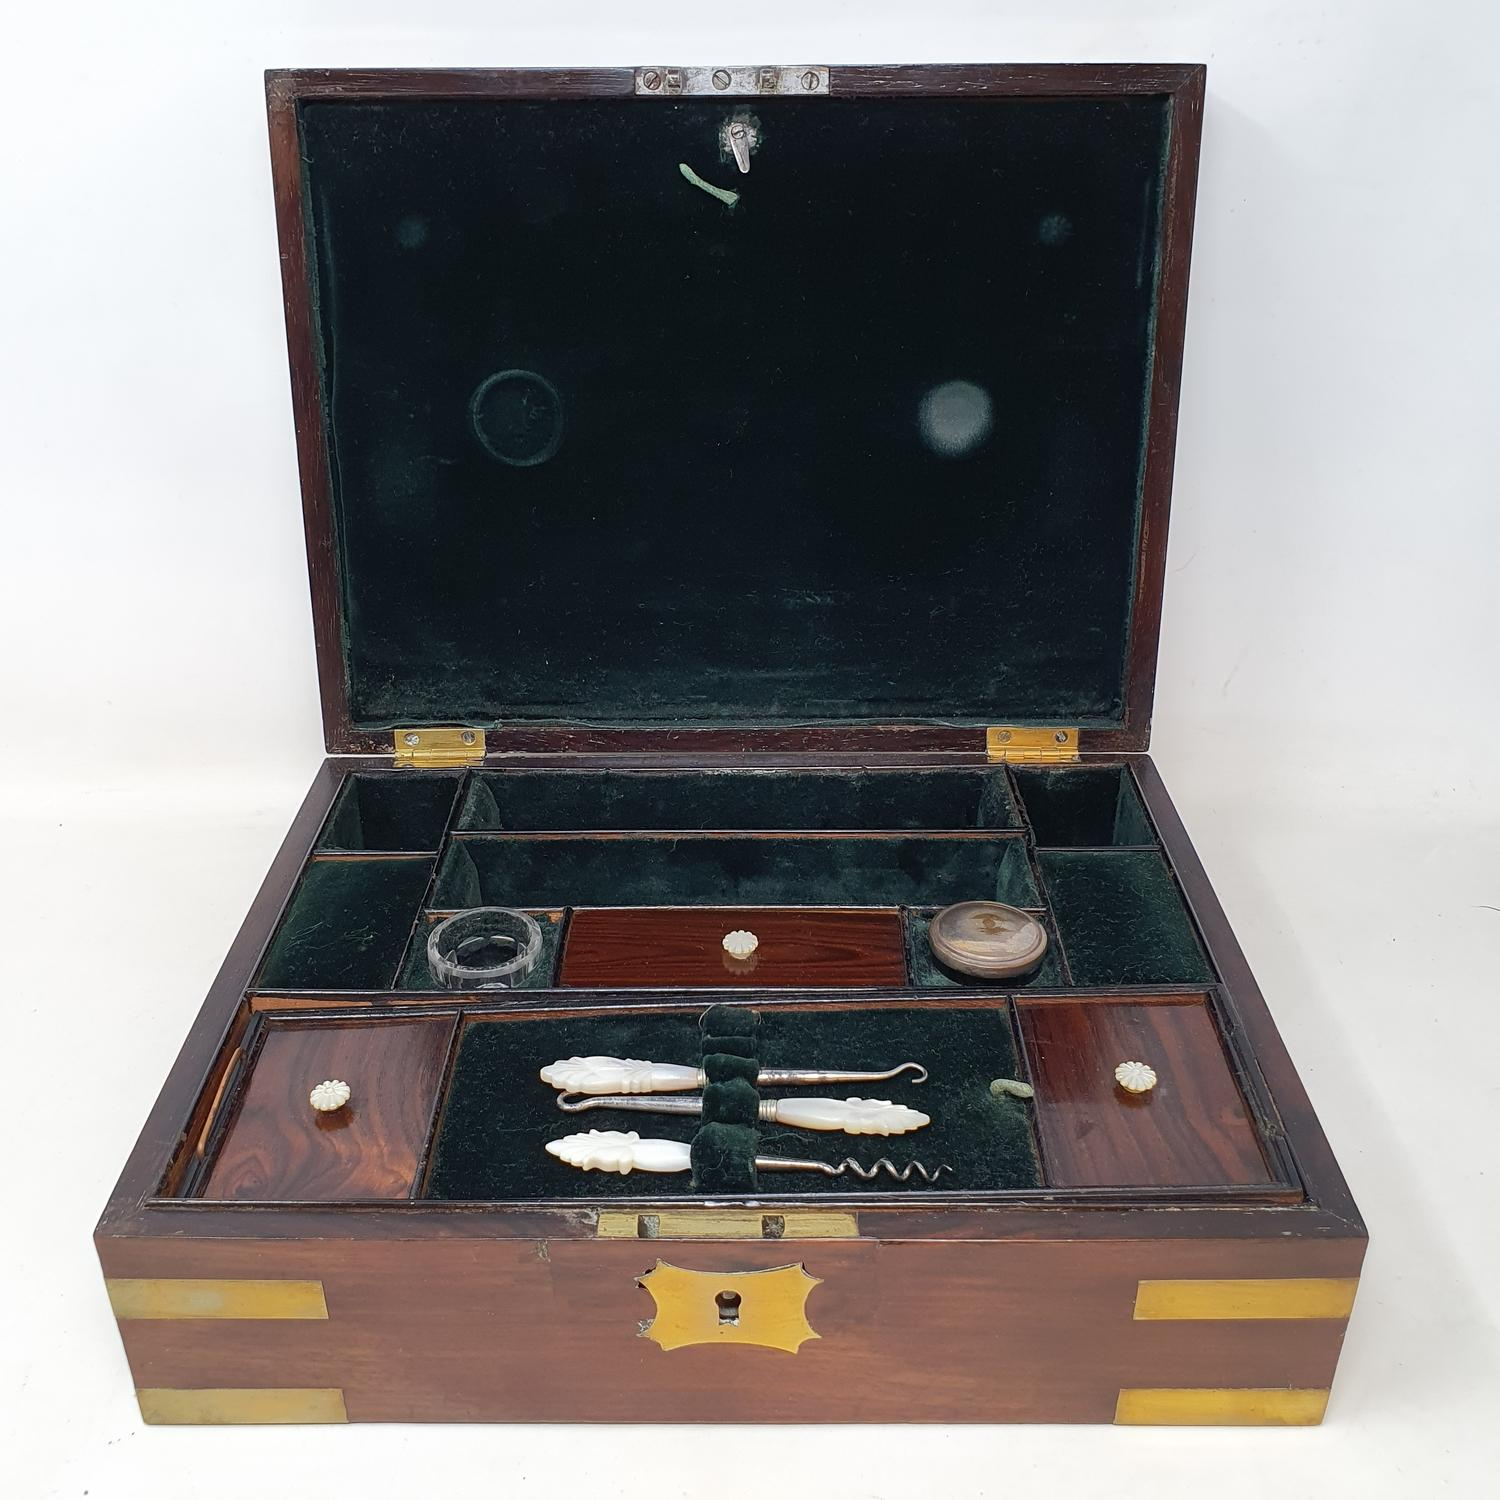 A 19th century mahogany and brass bound jewellery box, with a fitted interior, 30 cm wide